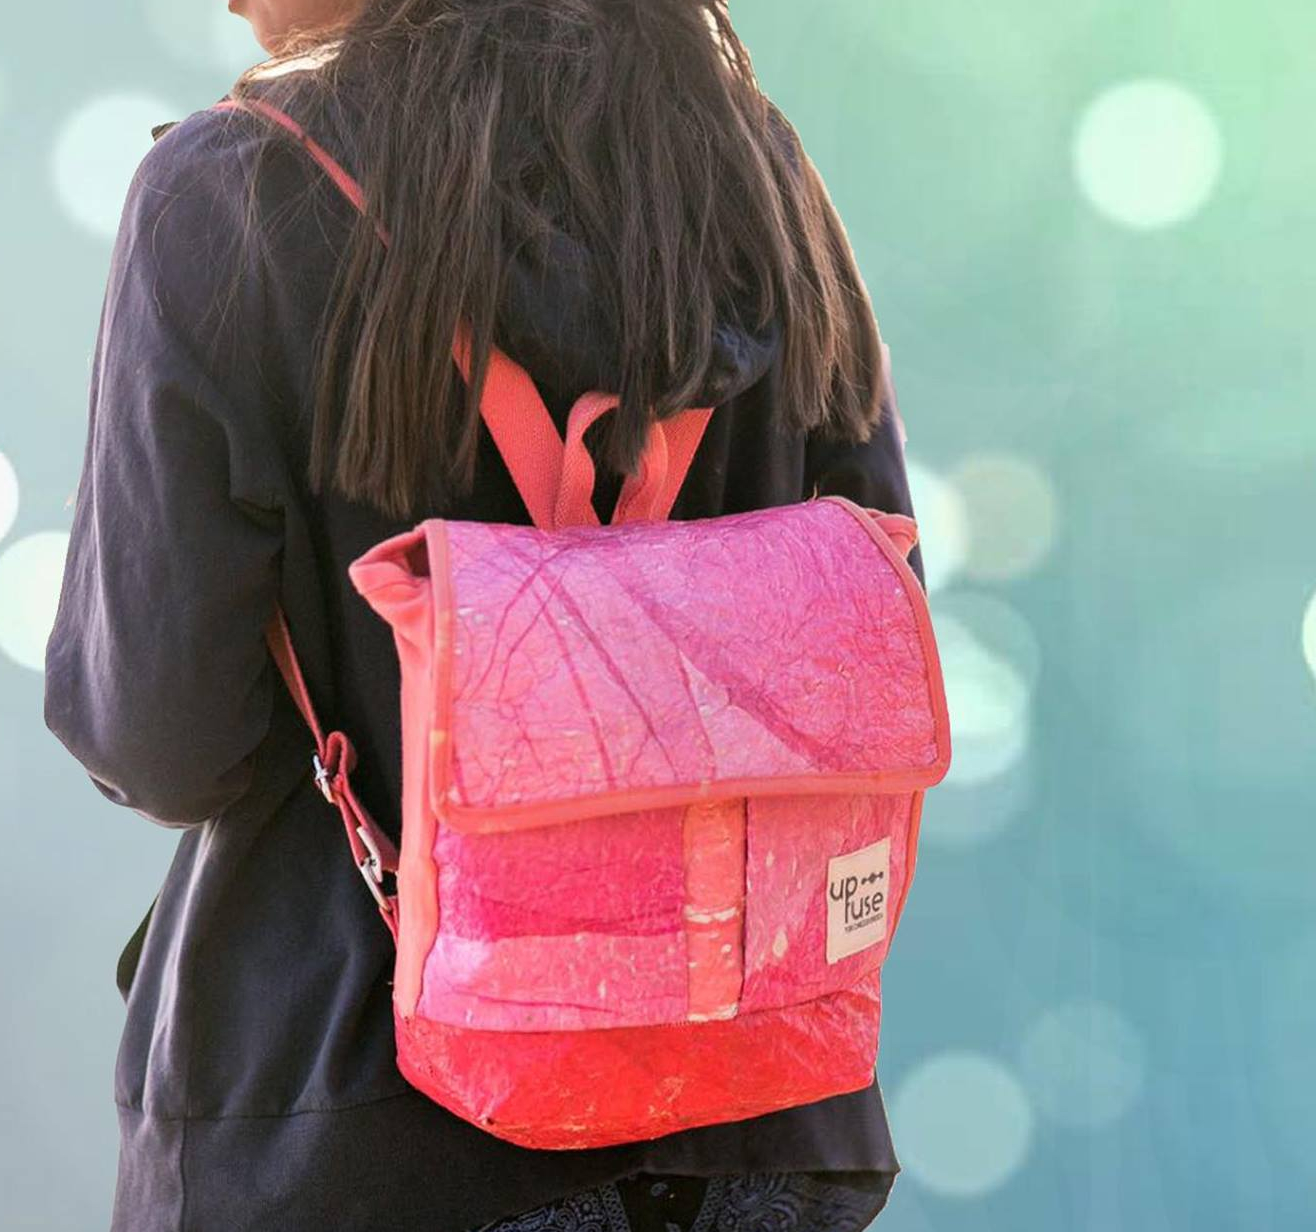 Up-fuse - mini backpack - upcycling - handmade & fair from Cairo - Gundara